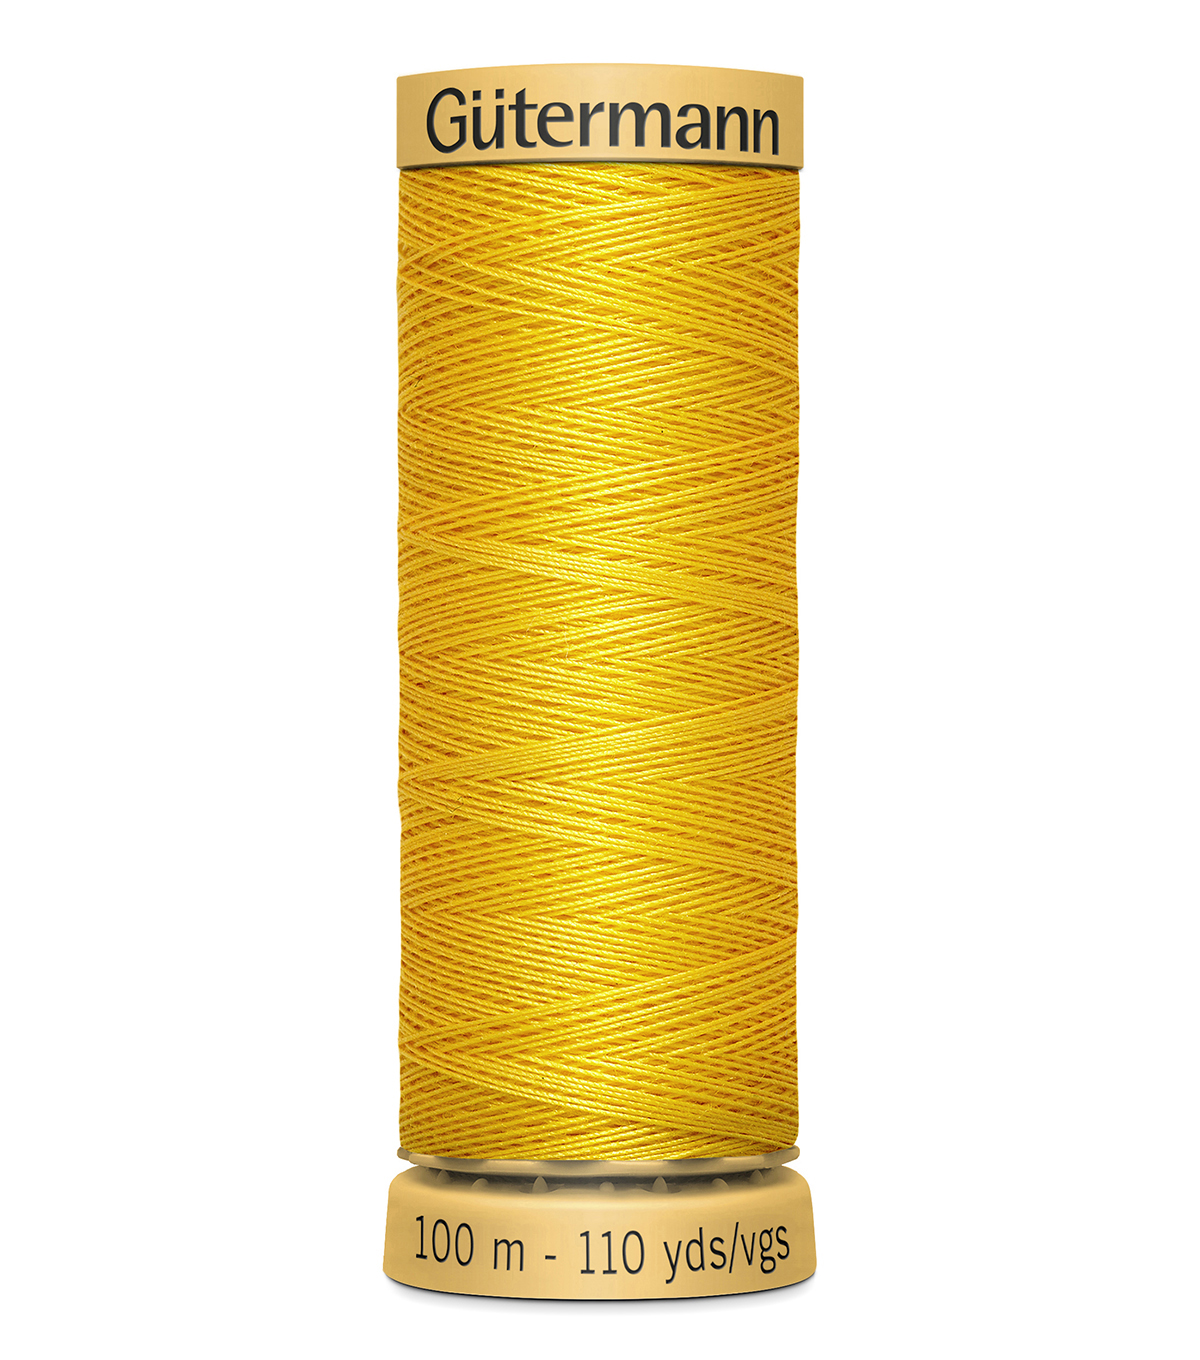 Gutermann Sew All Polyester Thread 110 Yards-Oranges & Yellows , Bight Yellow